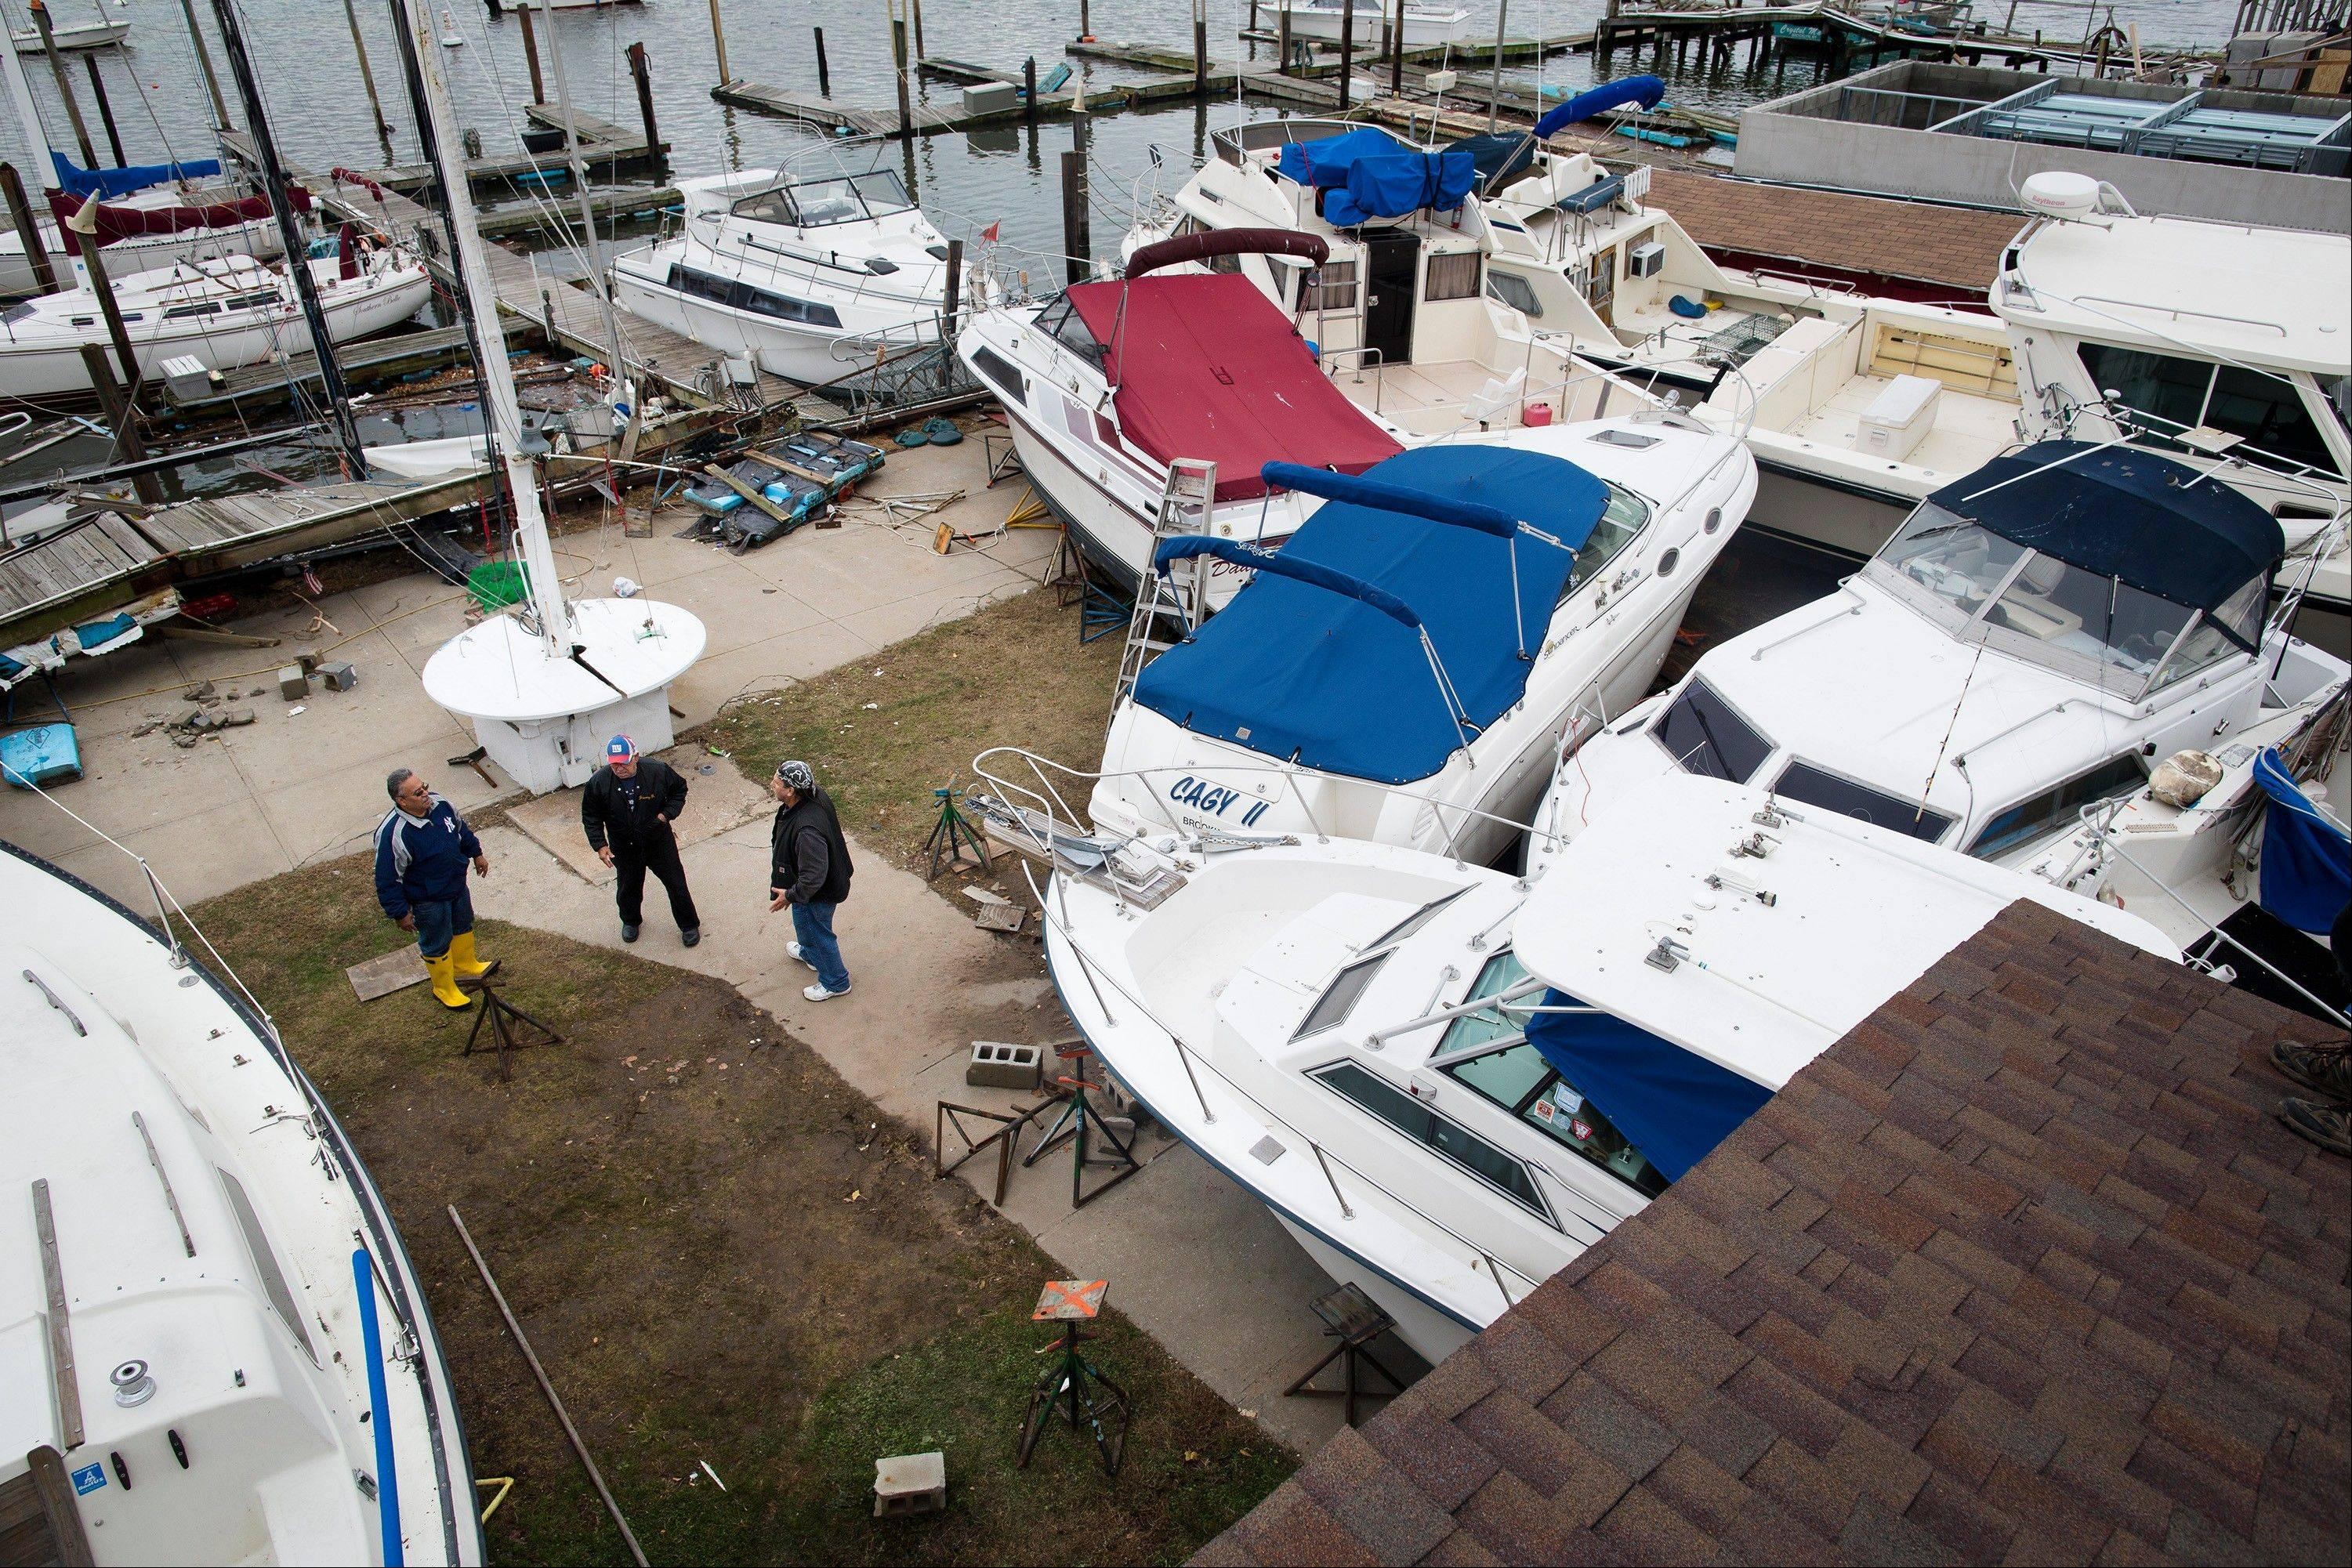 Members of the Varuna boat club stand near a pile of boats washed ashore, Wednesday, Oct. 31, 2012, in the Brooklyn borough of New York. Sandy, the storm that made landfall Monday, caused multiple fatalities, halted mass transit and cut power to more than 6 million homes and businesses.